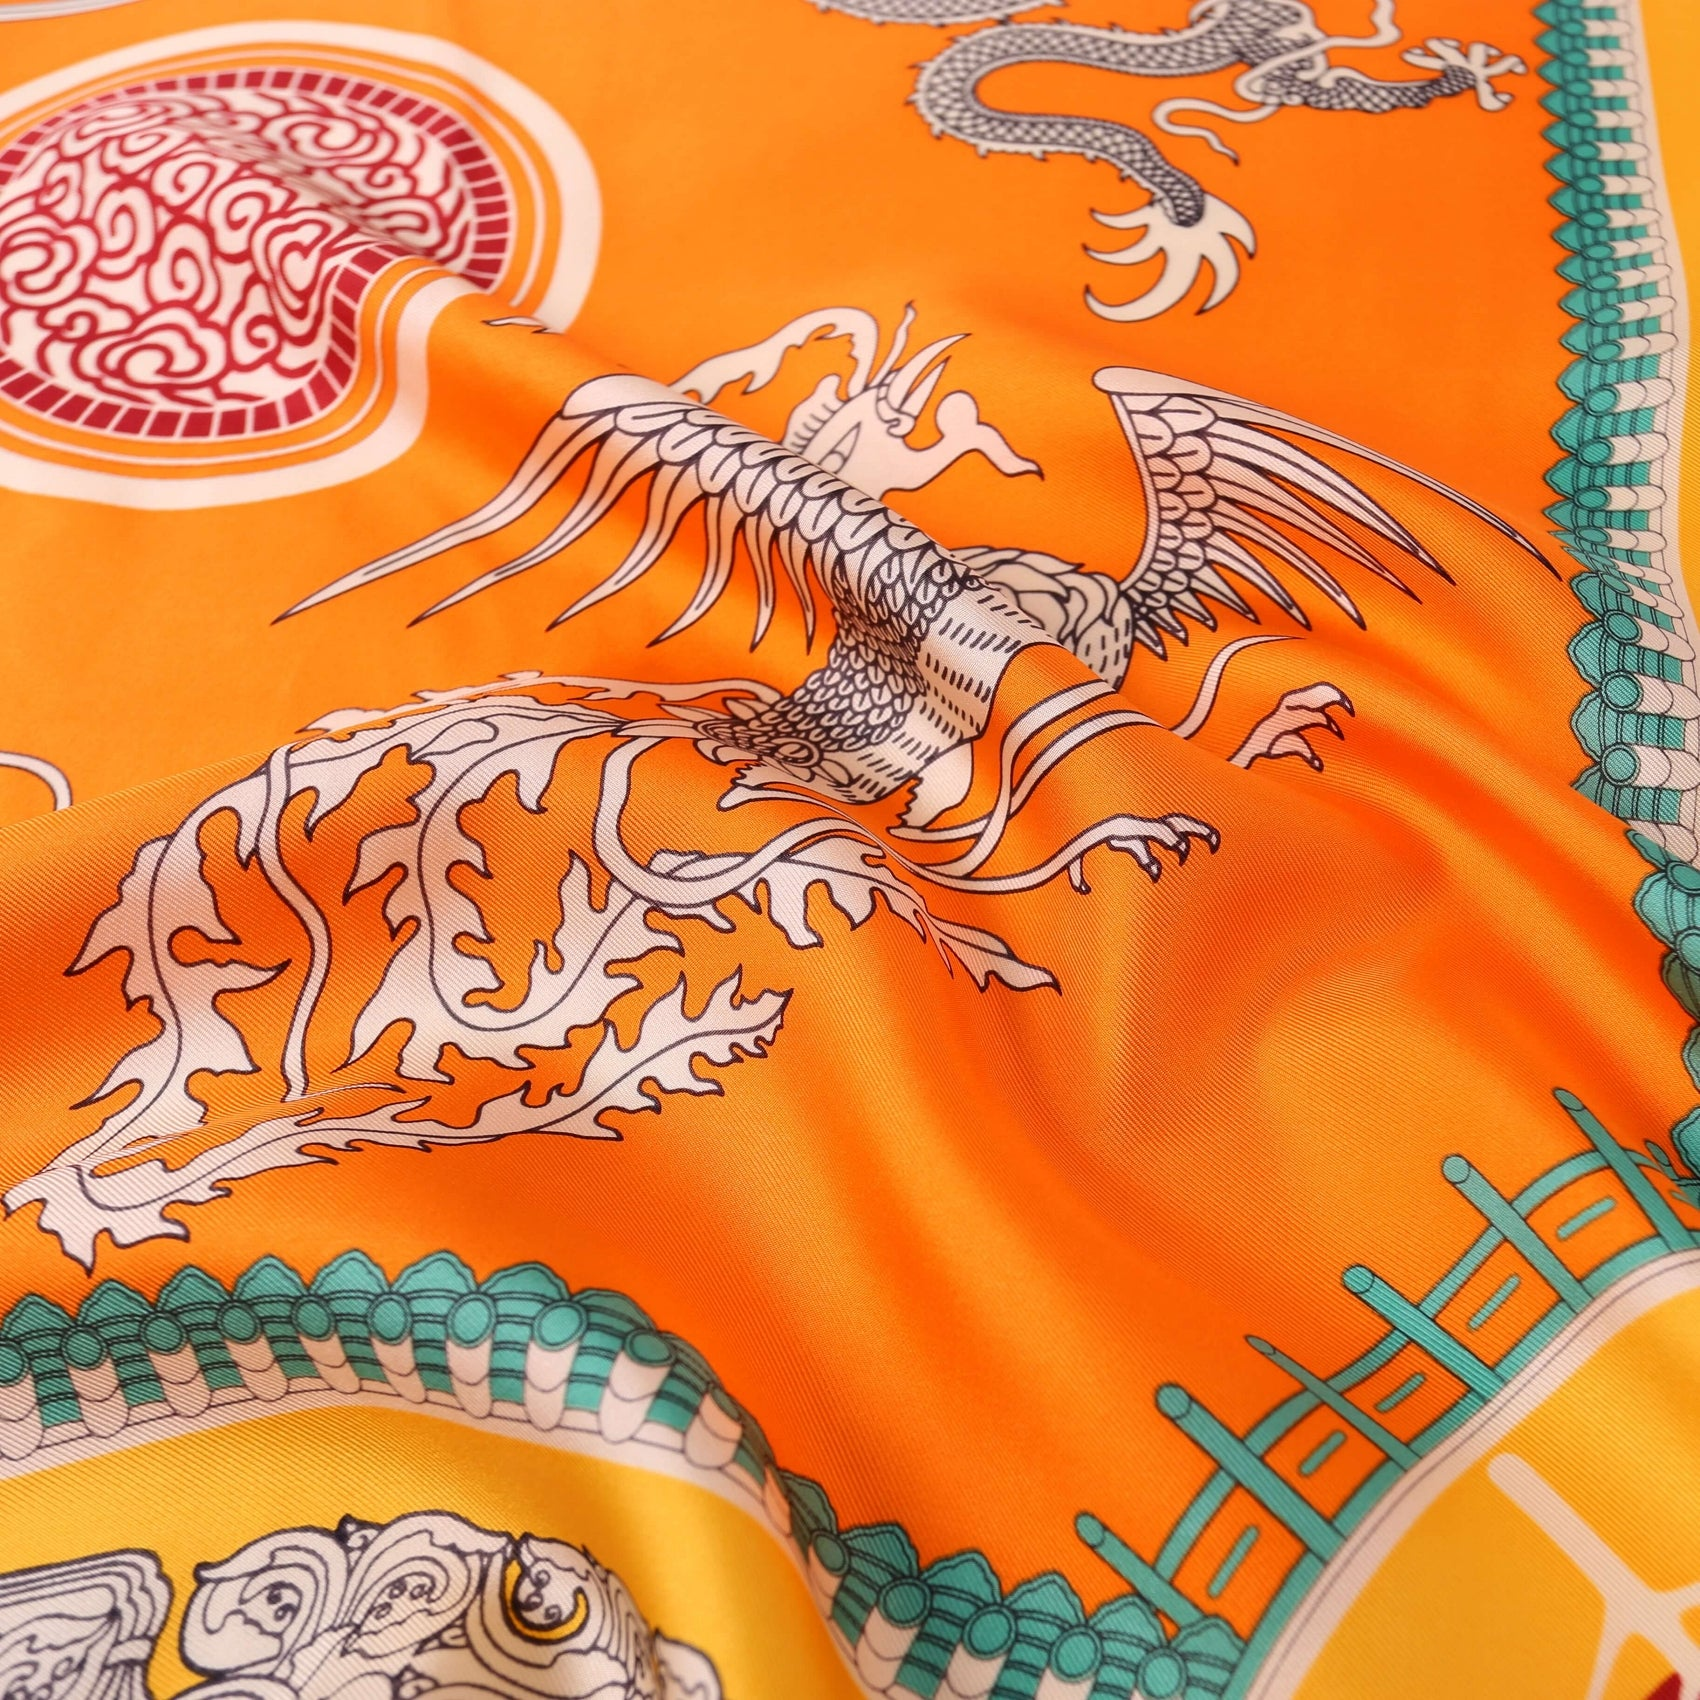 Vshine Silk and Shine Large Square Silk Scarf Golden Dragon Orange